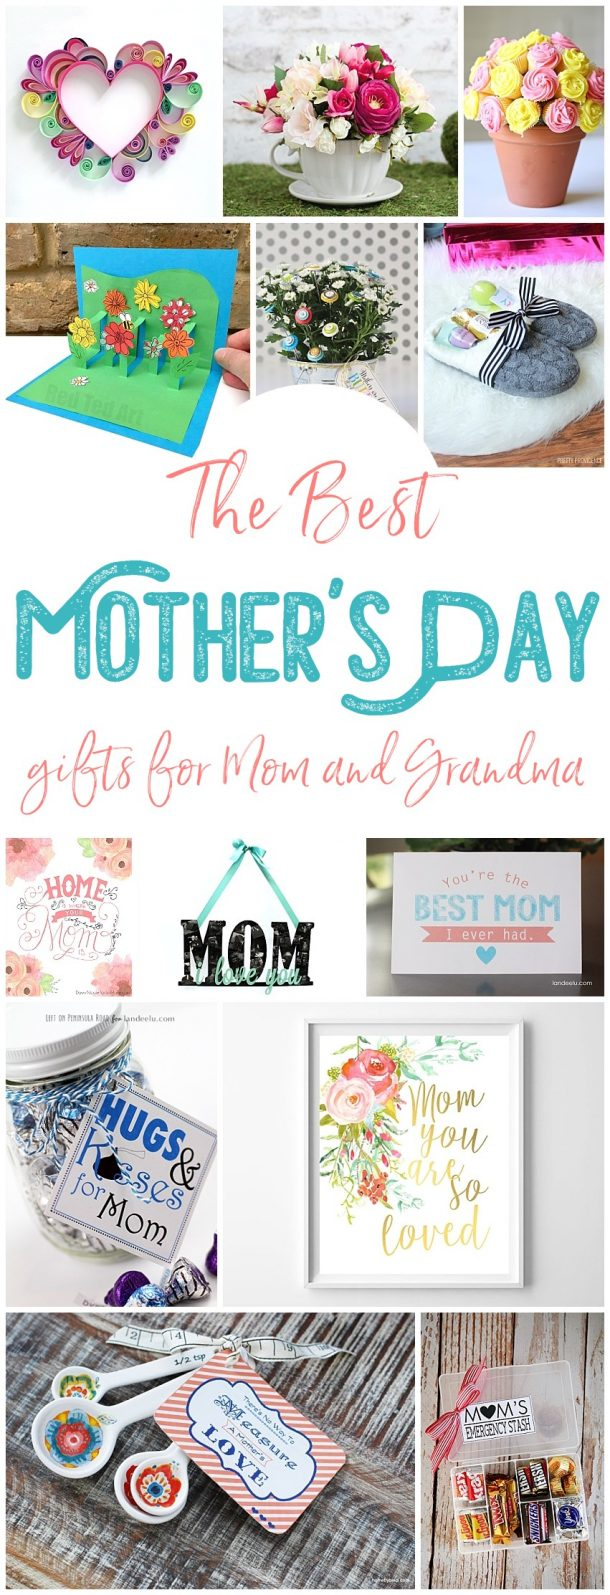 Awesome Diy Mother's Day Gifts The Best Easy Diy Mother S Day Gifts And Treats Ideas Holiday